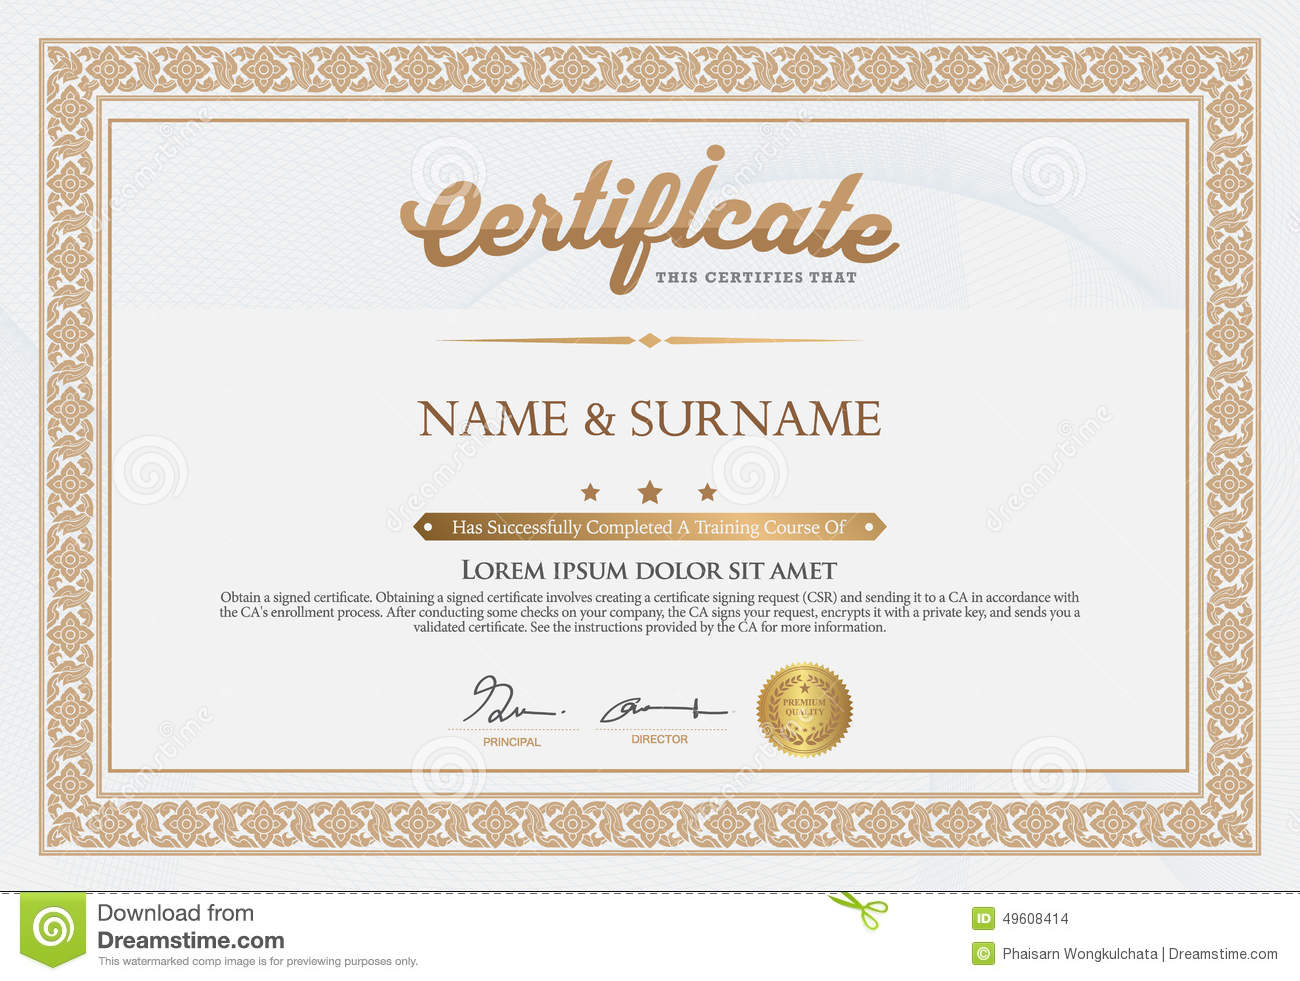 Certificate Of Completion Template Stock Vector - Illustration of ...